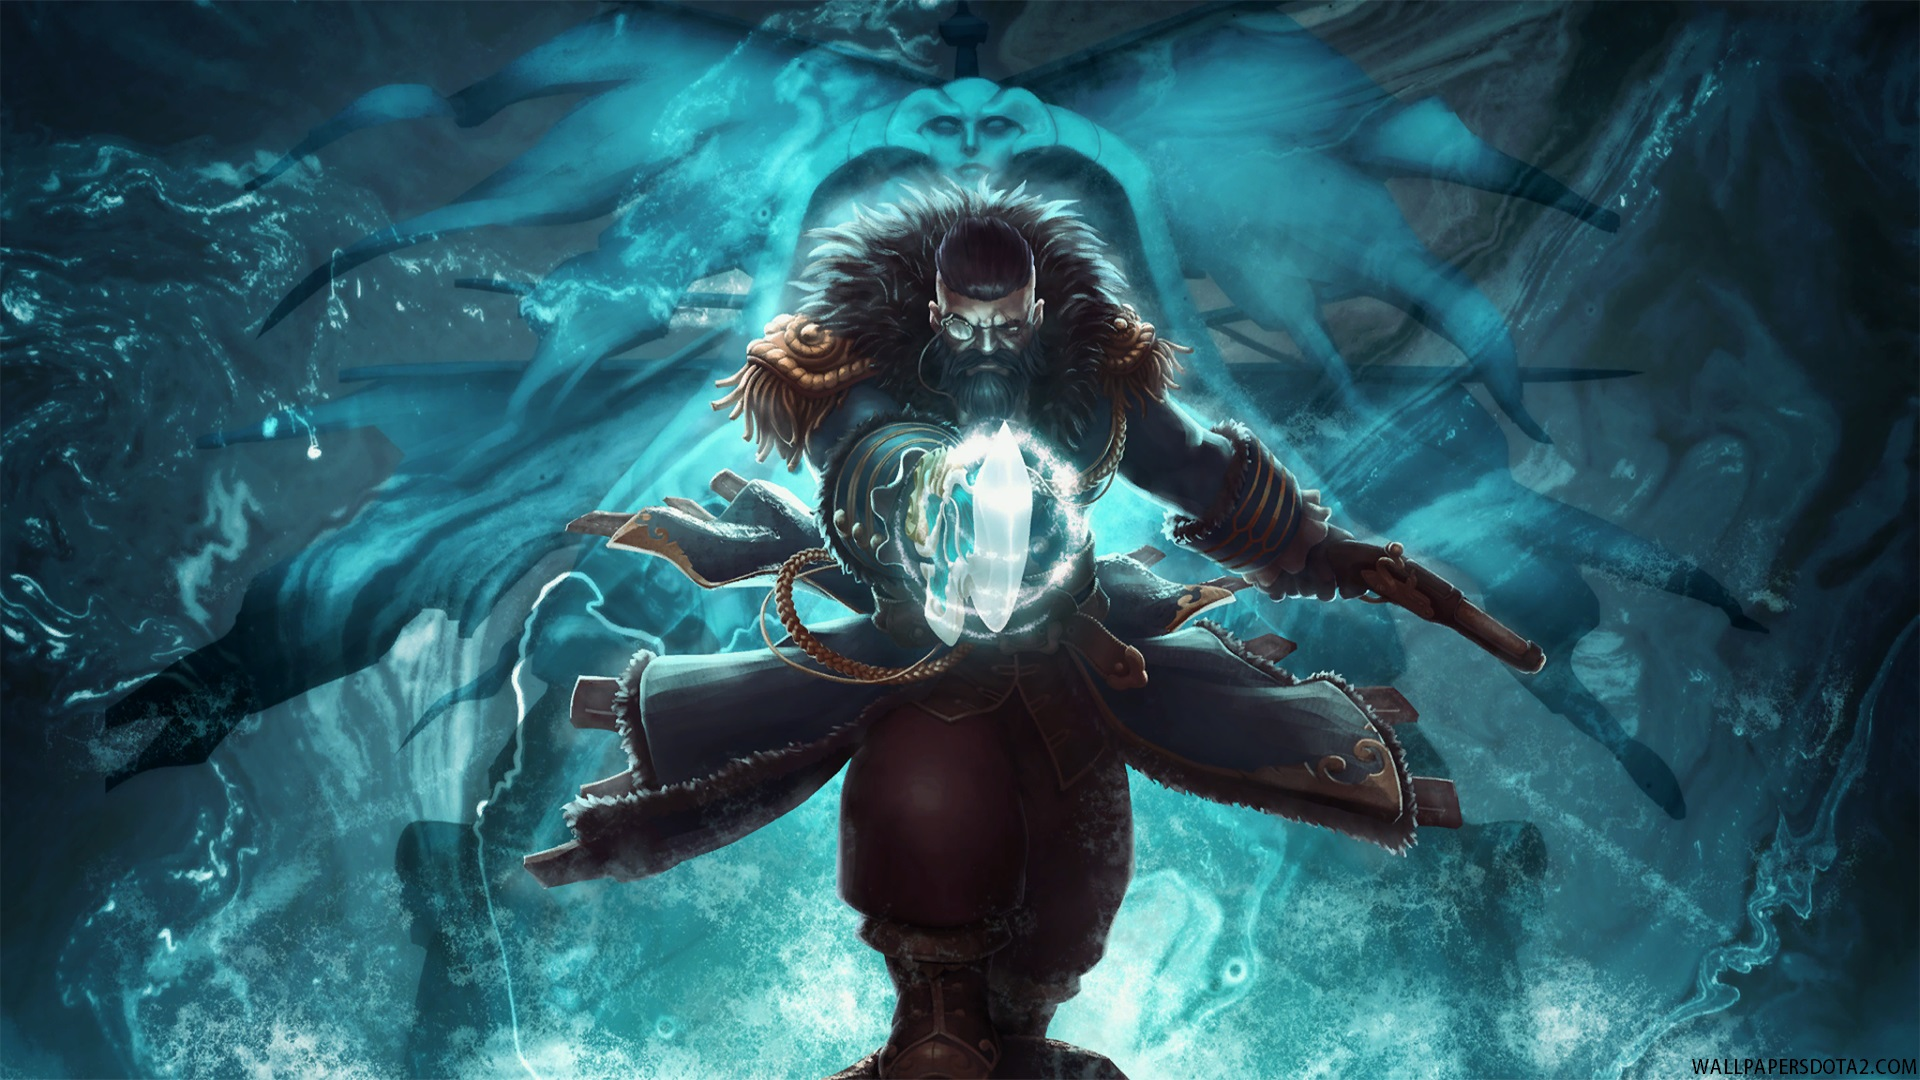 Kunkka Desktop Bestowments Of The Divine Anchor Wallpapers Download Dota 2 Wallpapers Dota 2